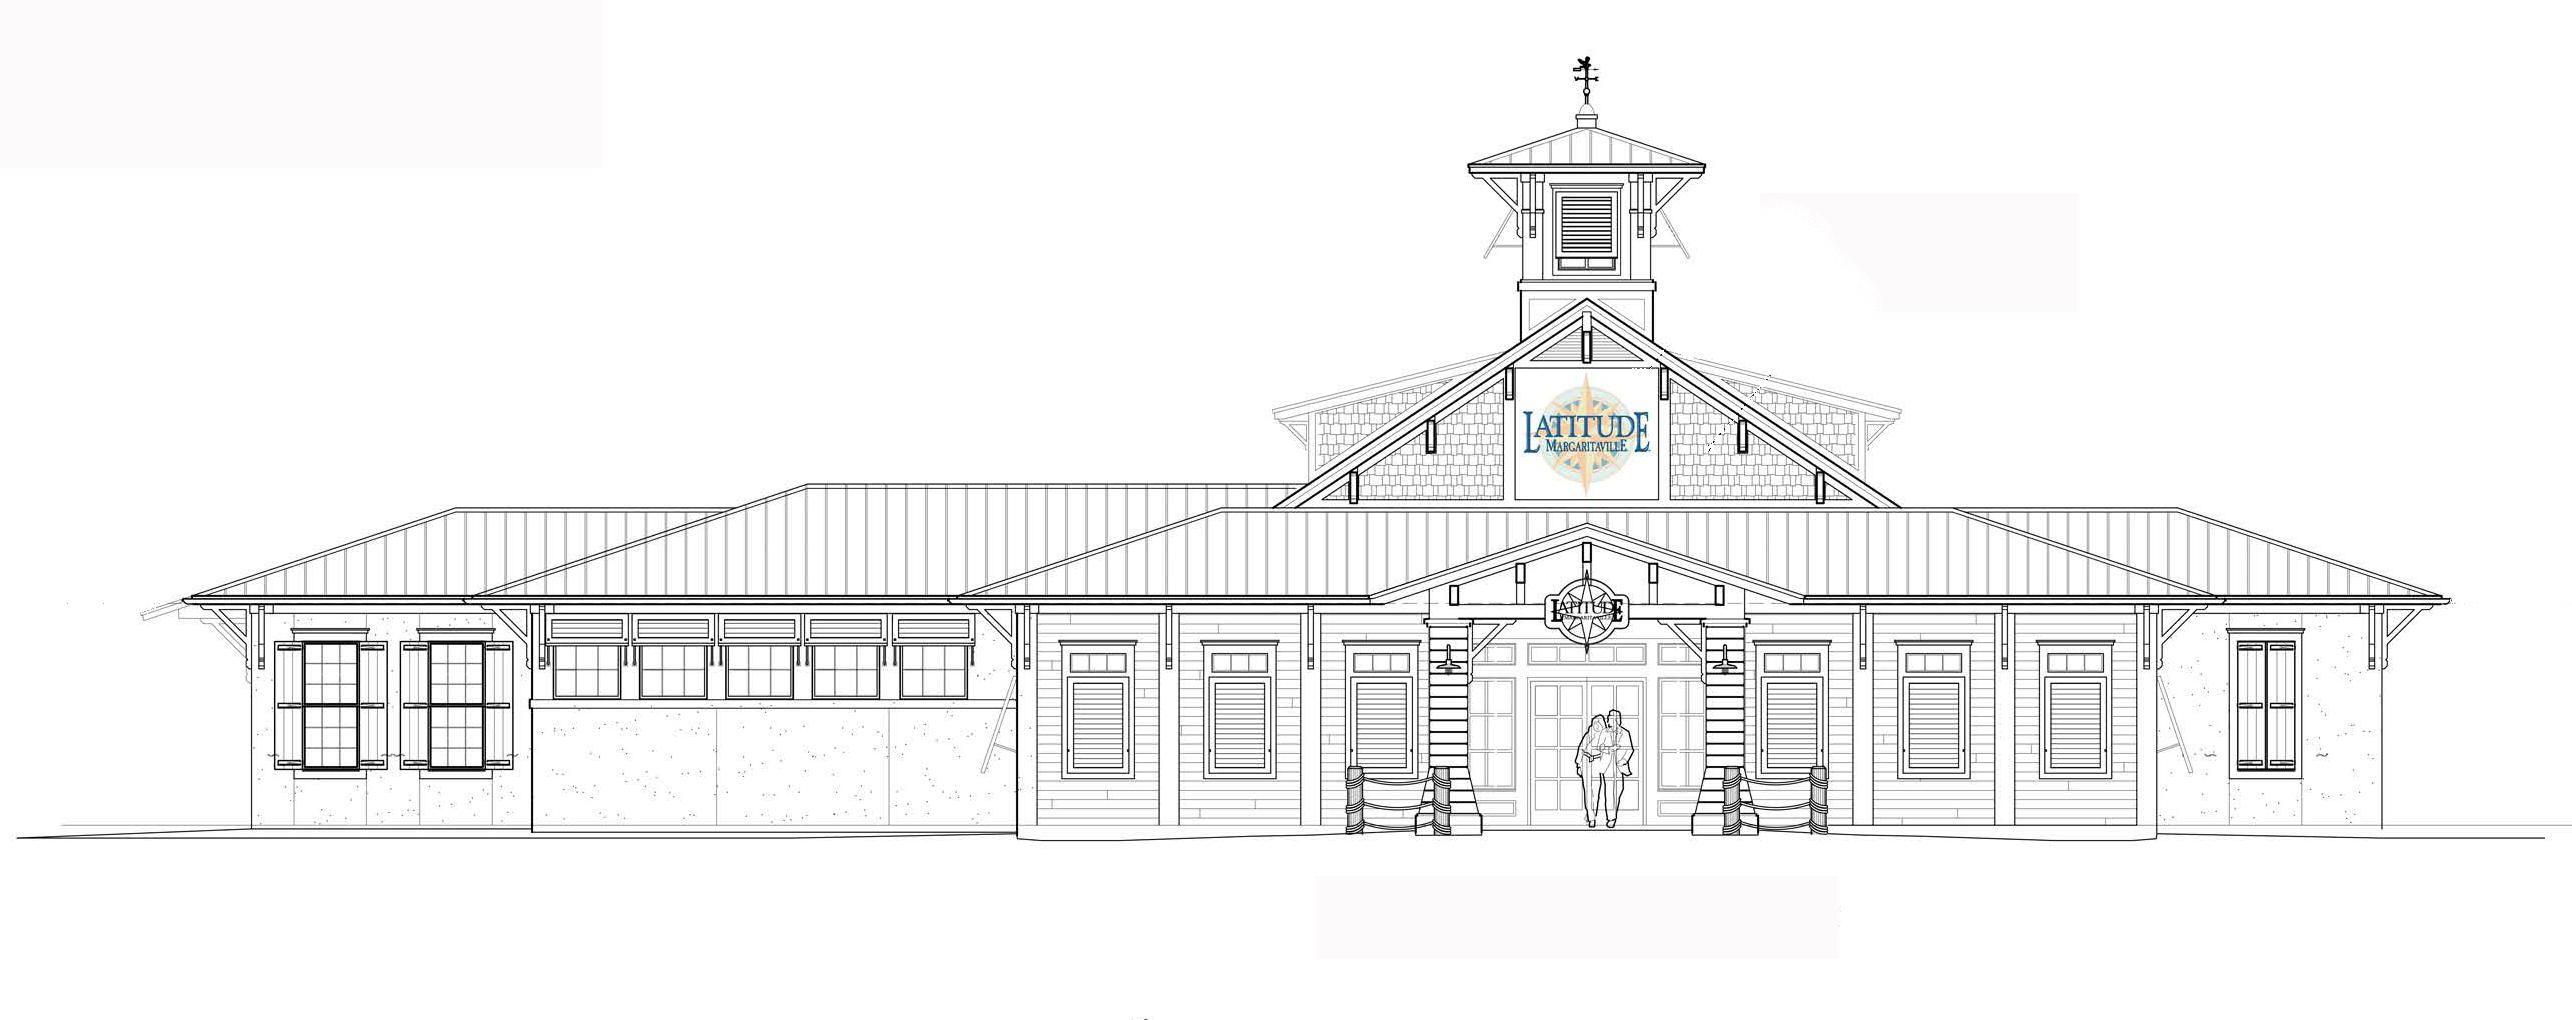 Minto Communities, Margaritaville Holdings and The St. Joe ... on plans for gates, plans for apartment complexes, plans for garages, plans for construction, plans for pool, plans for furniture,